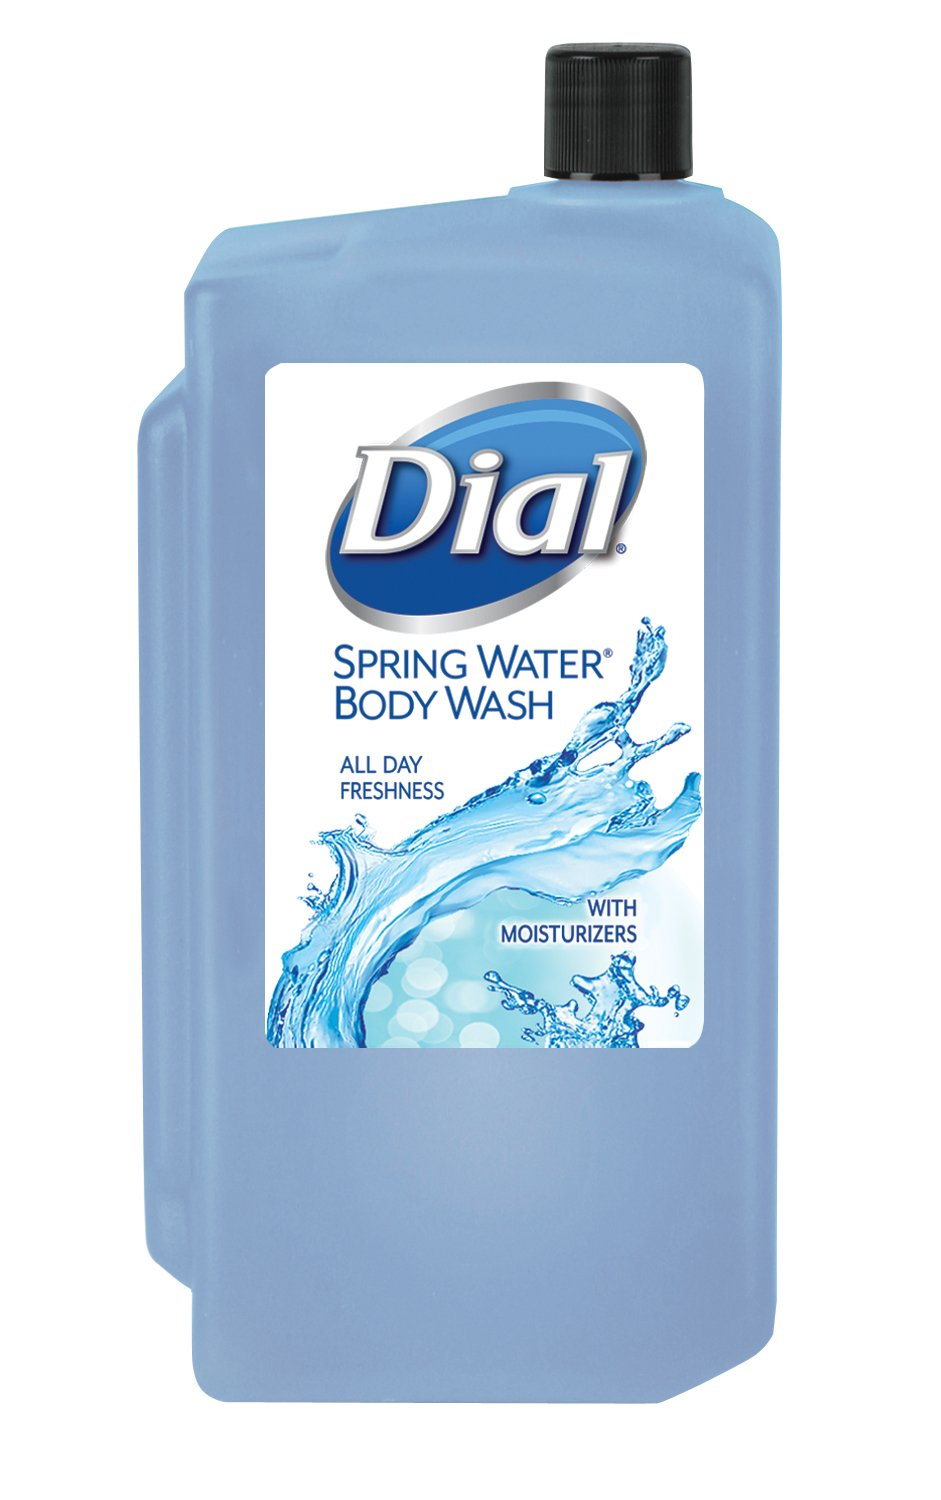 Dial Spring Water Body Wash, 1L Refill Cartridge (Pack of 8)